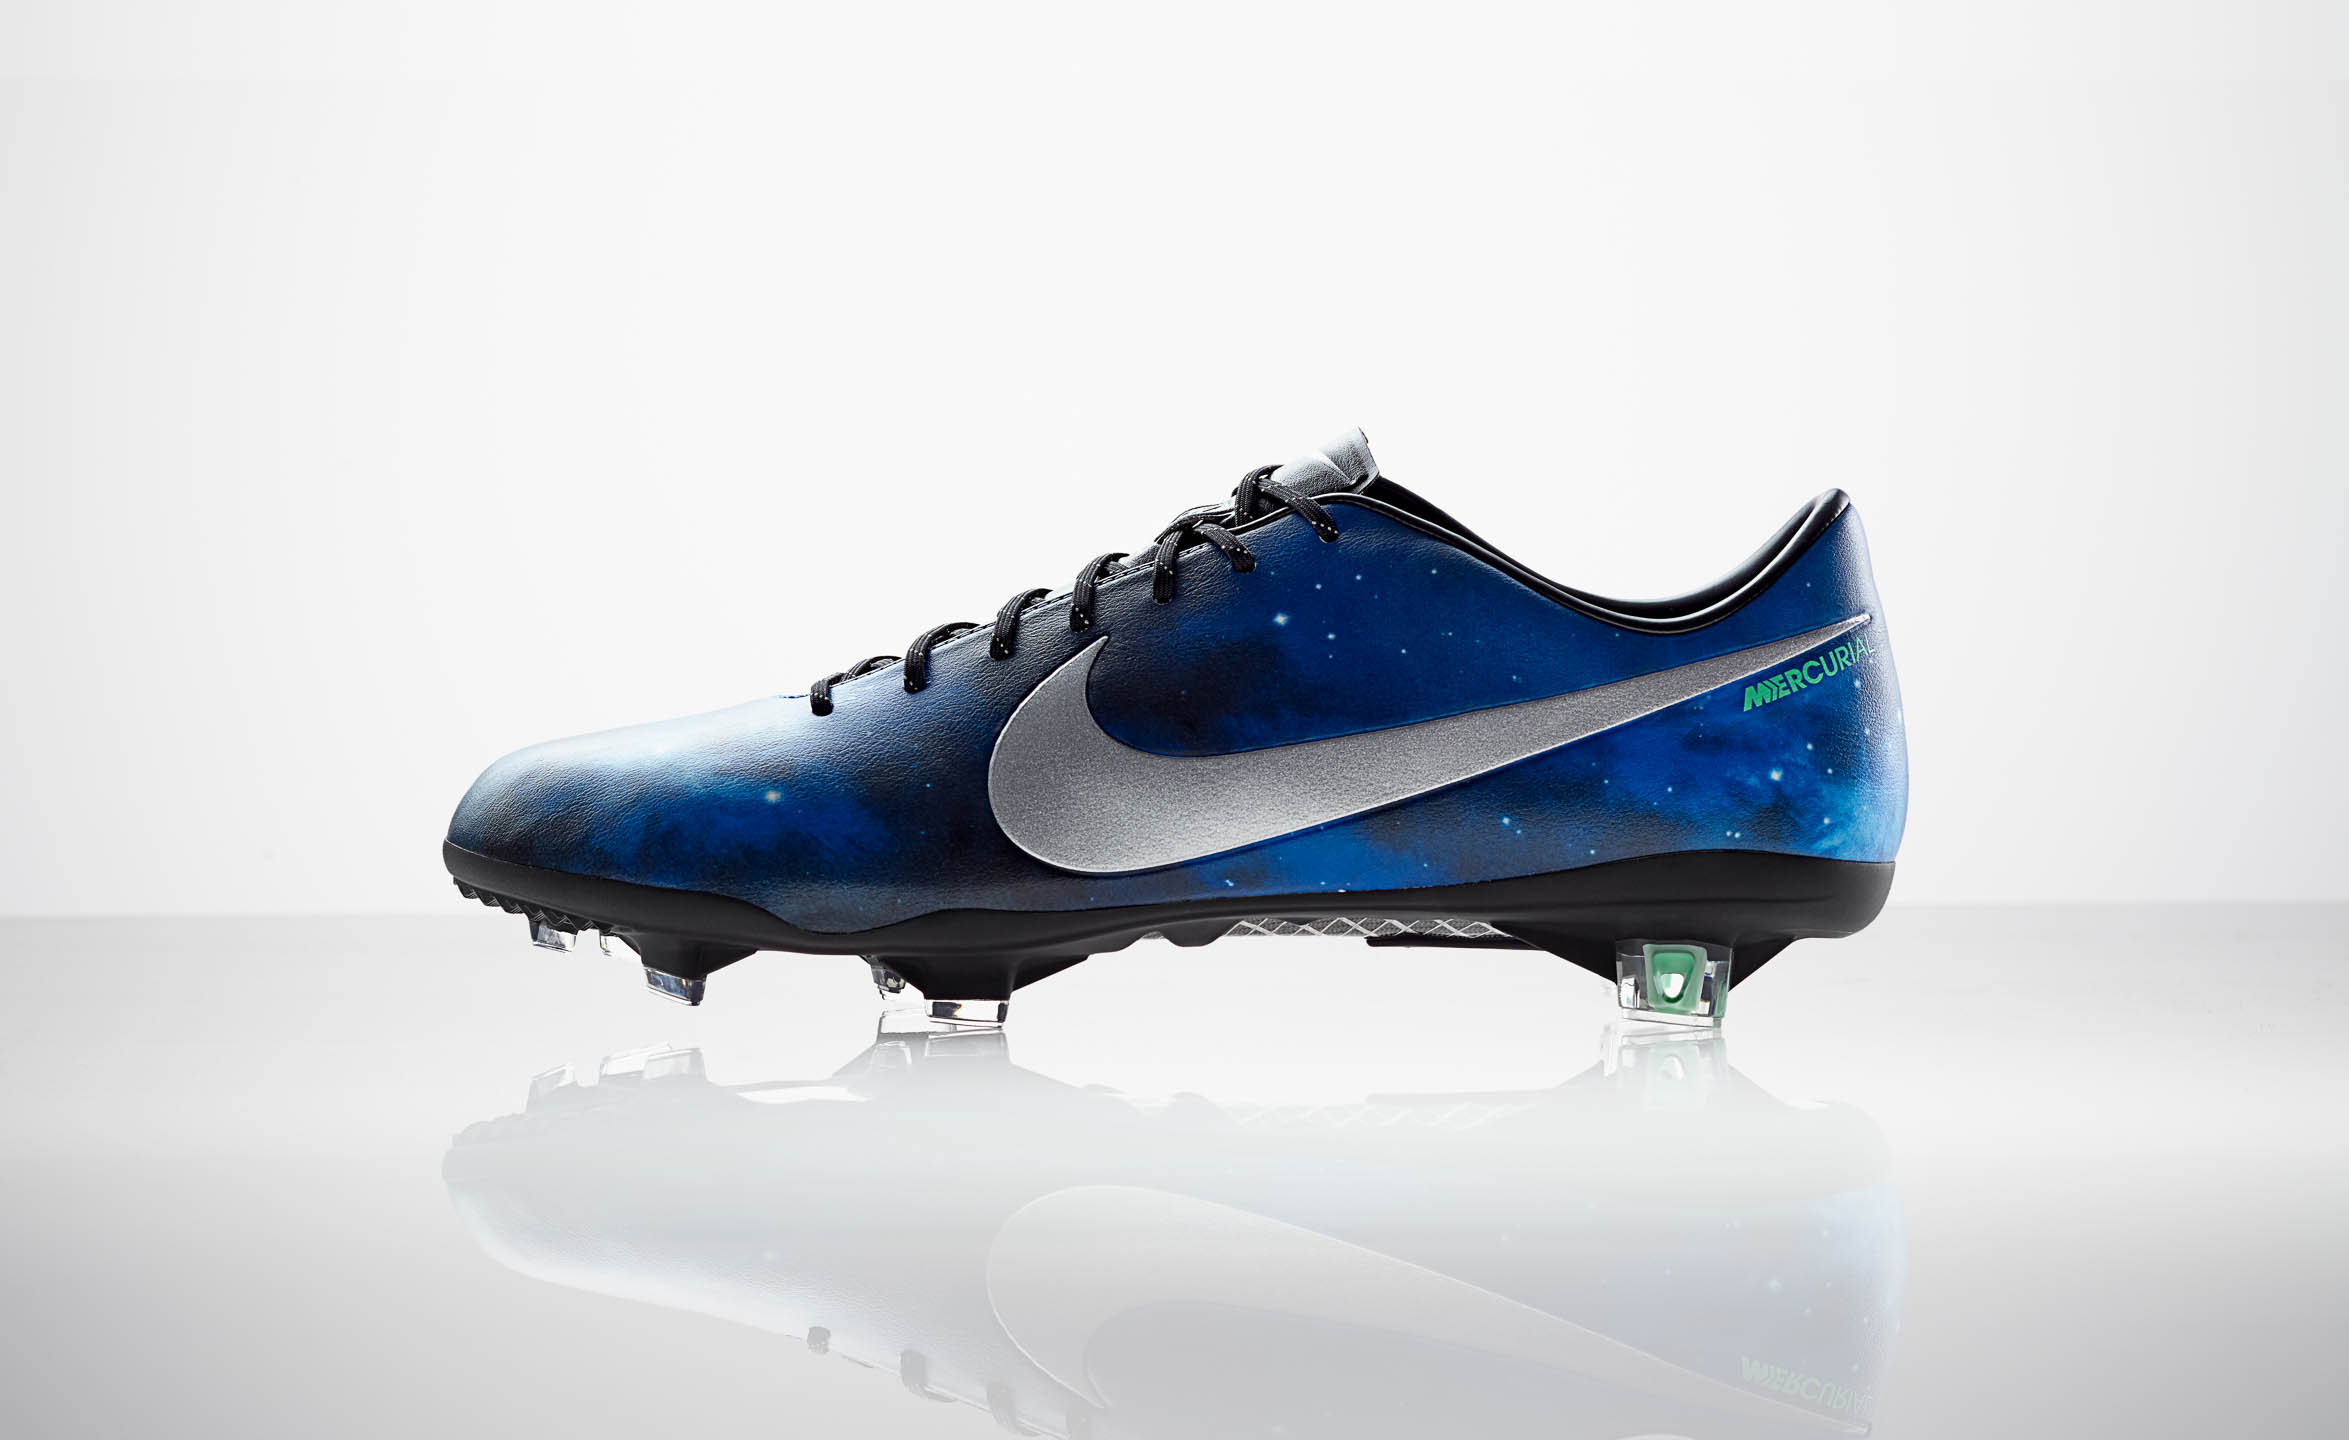 Nike Mercurial CR7 soccer cleat